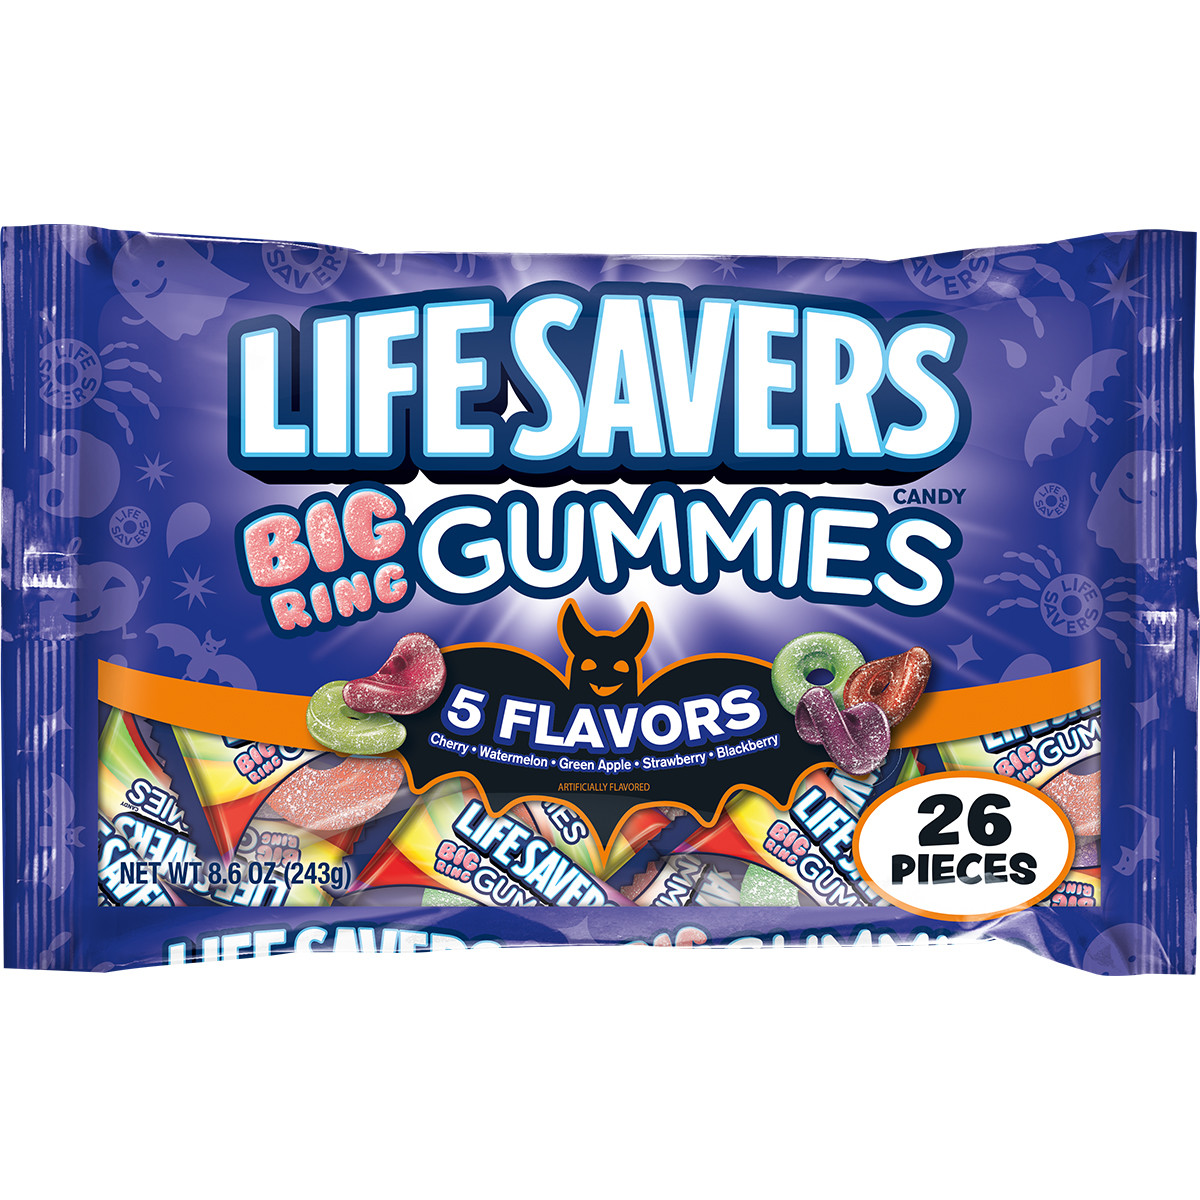 Lifesavers 5 Flavors Big Ring Gummies Halloween Candy Bag, 26 Fun Size Pieces, 8.6 ounces